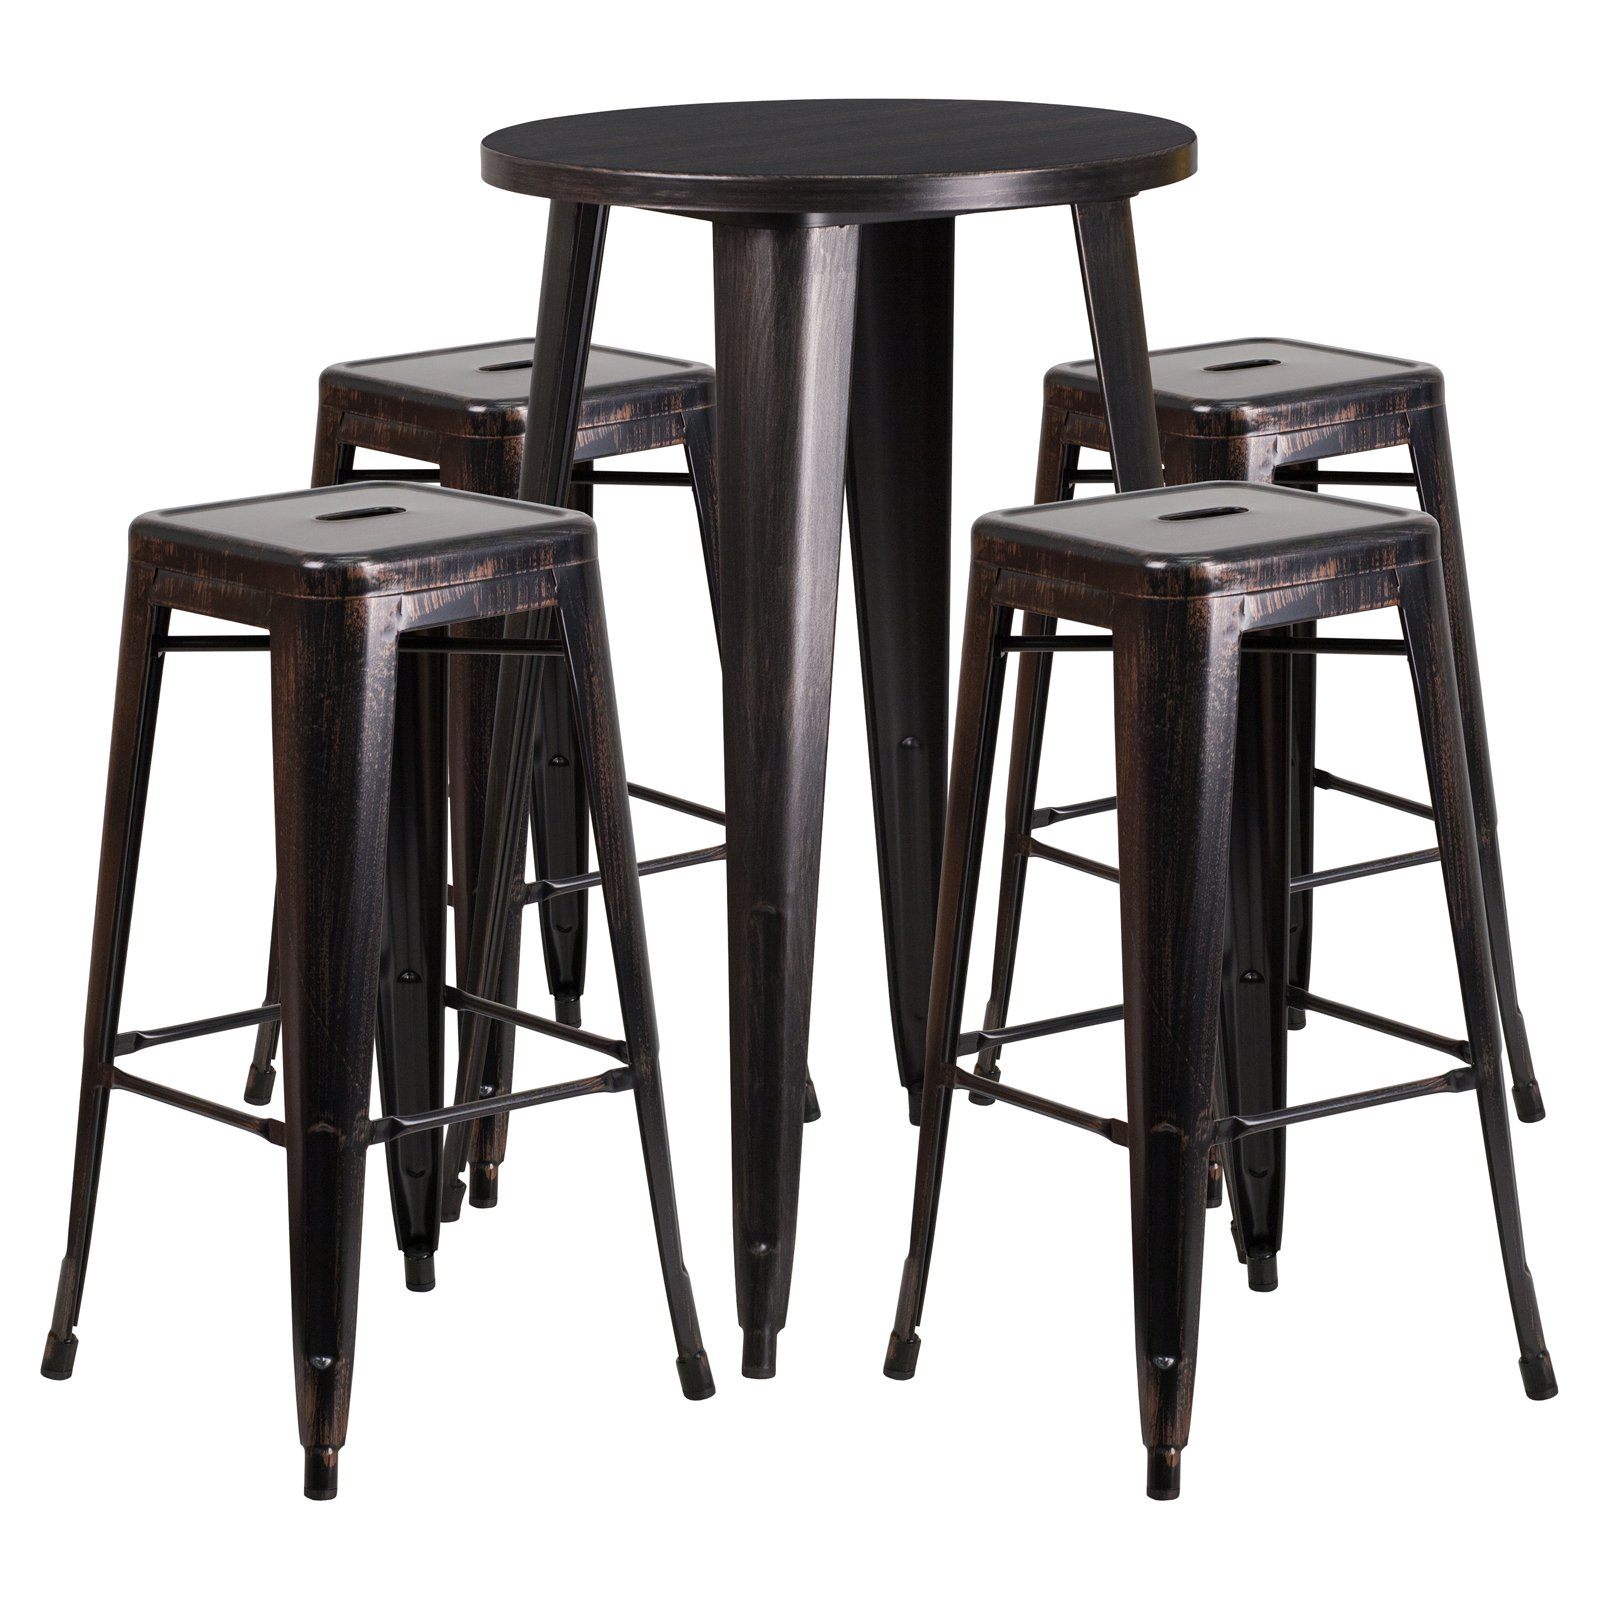 "Flash Furniture 24"" Round Black-Antique Gold Metal Indoor-Outdoor Bar Table Set with 4 Square Seat Backless Barstools"